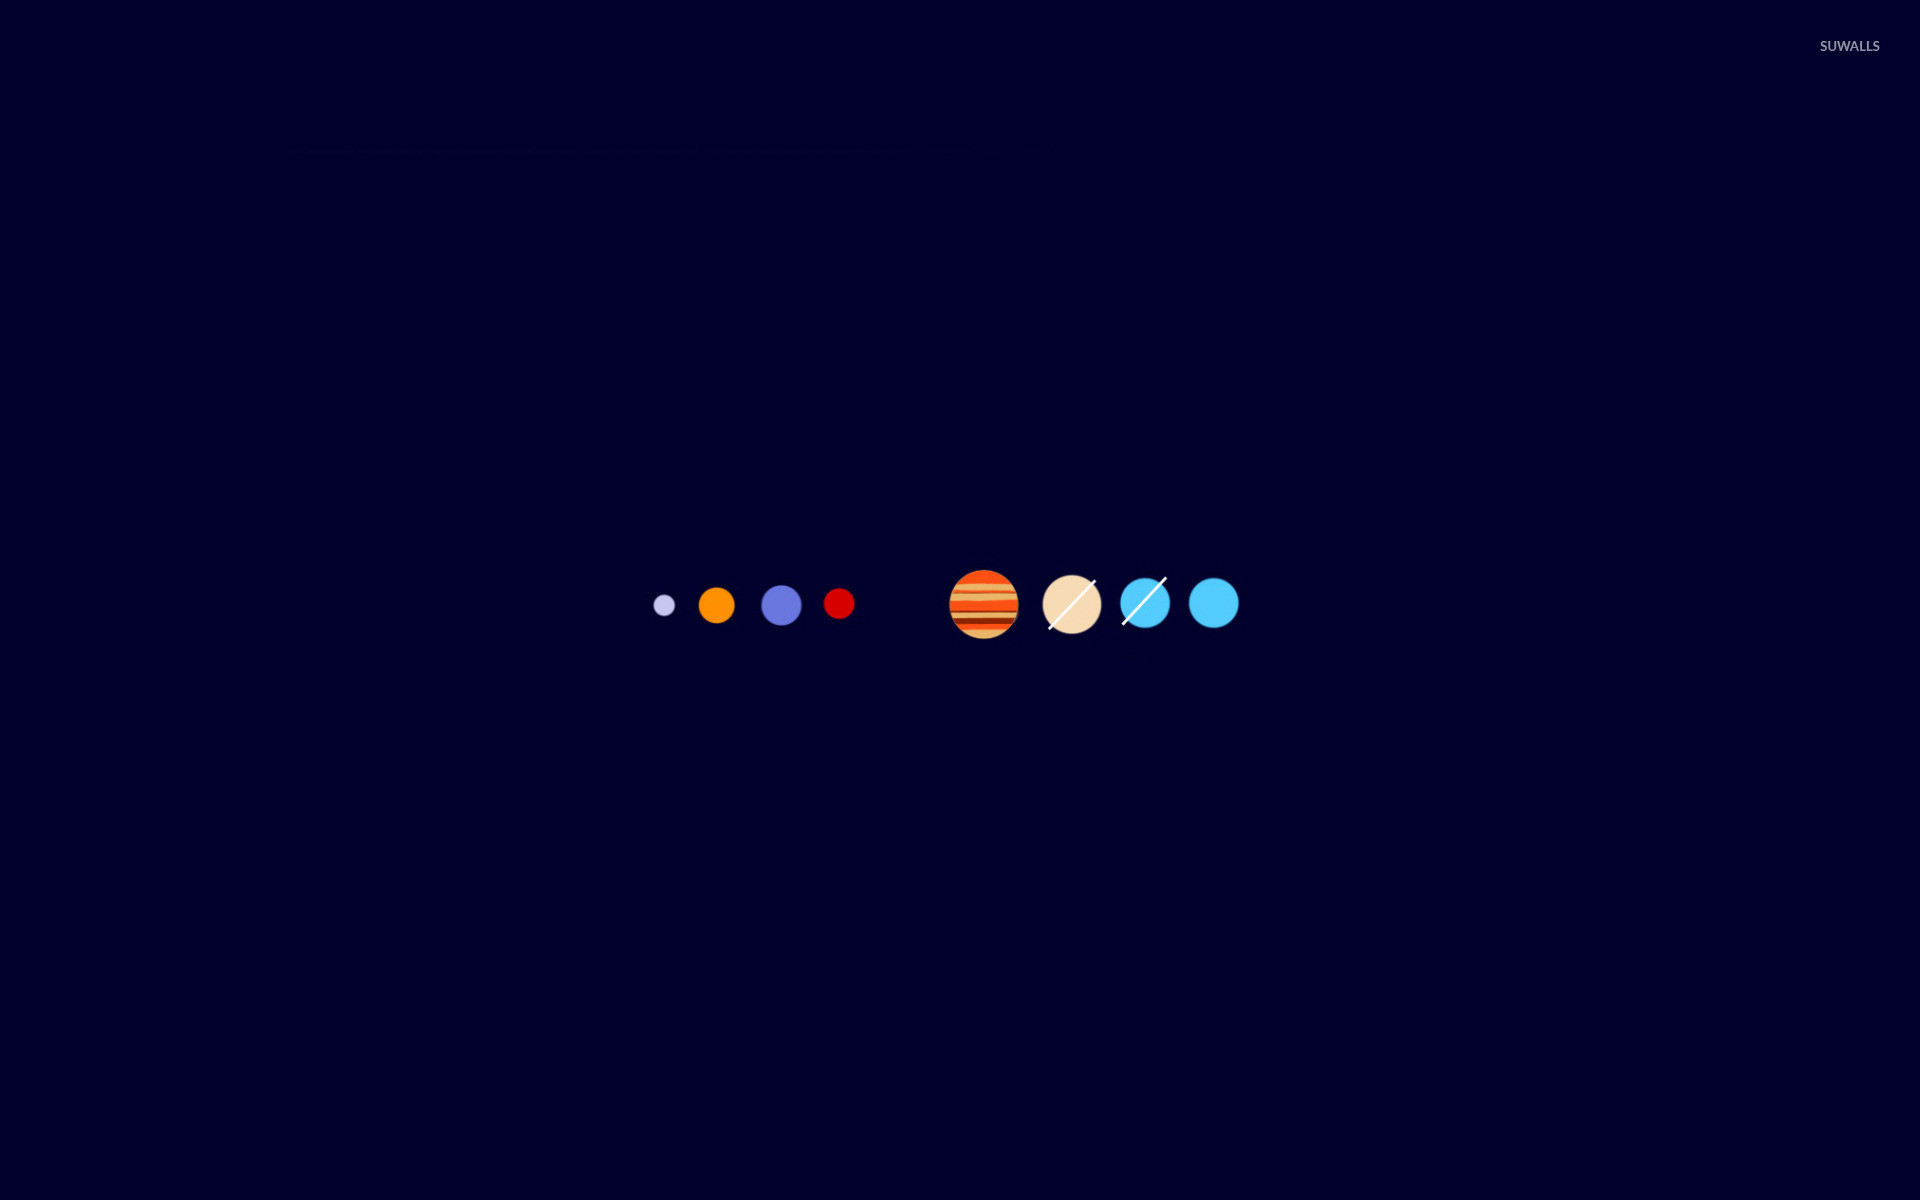 1920x1200 The solar system wallpaper